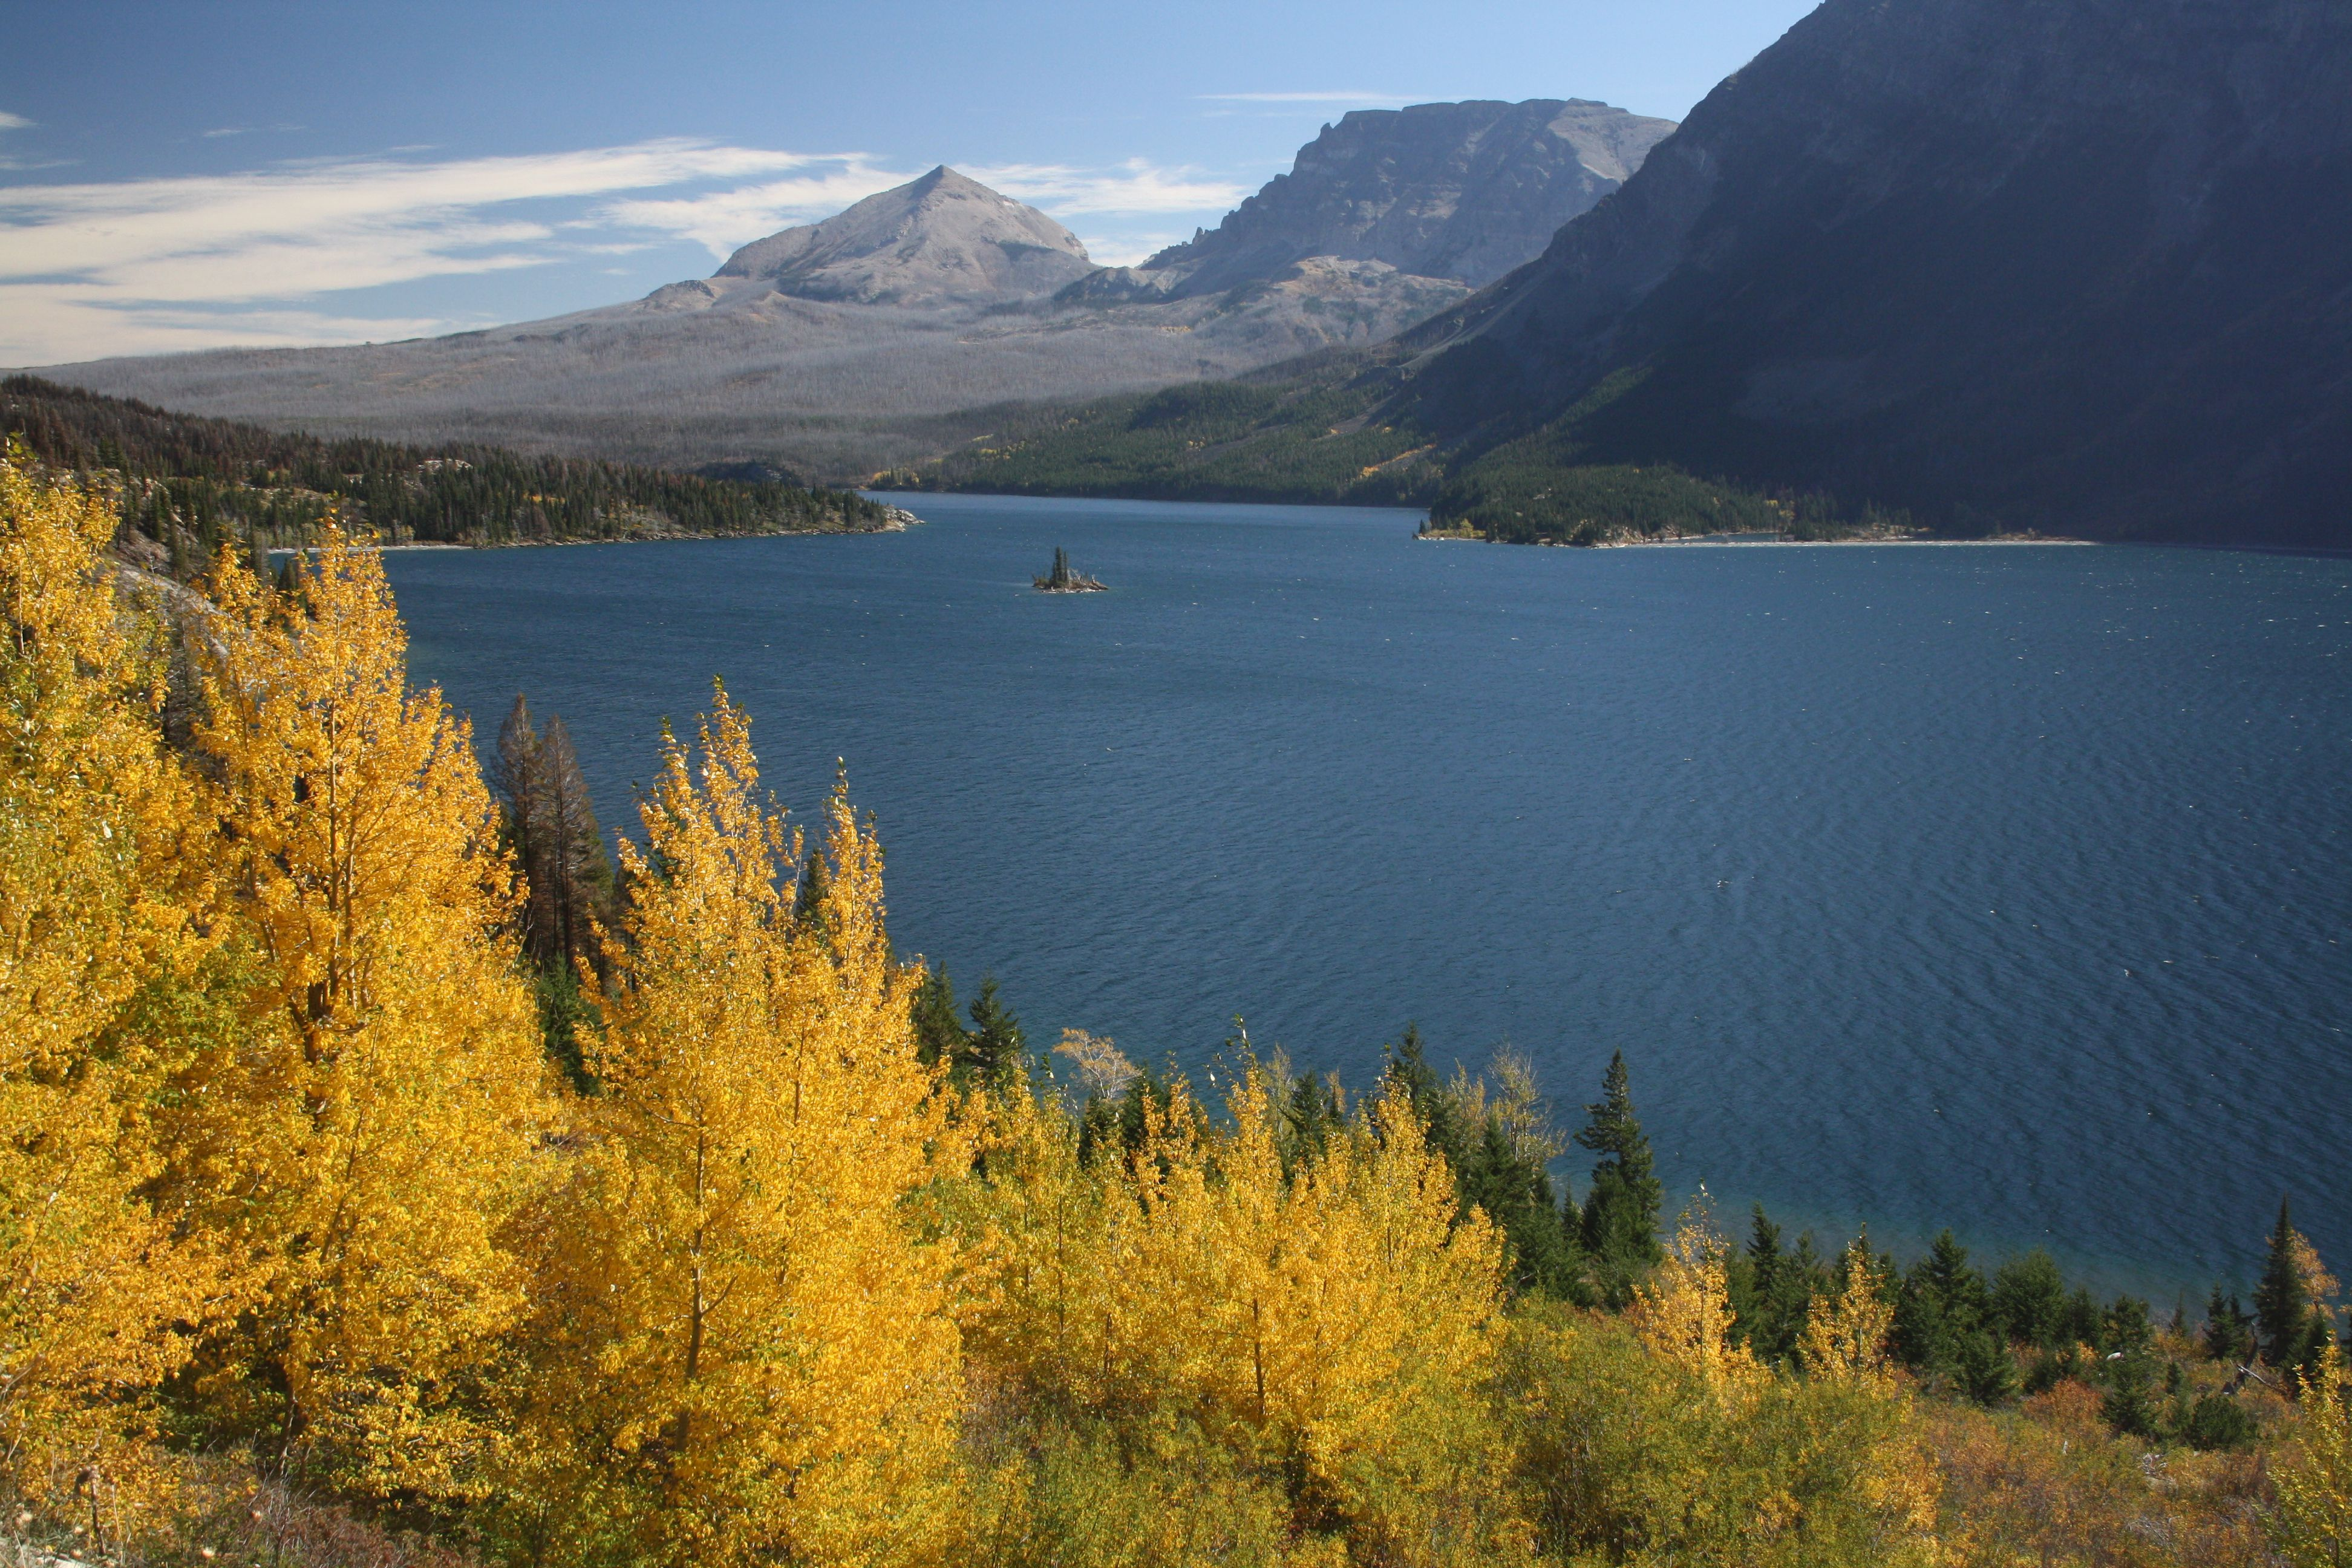 St. Mary Lake and autumn colors